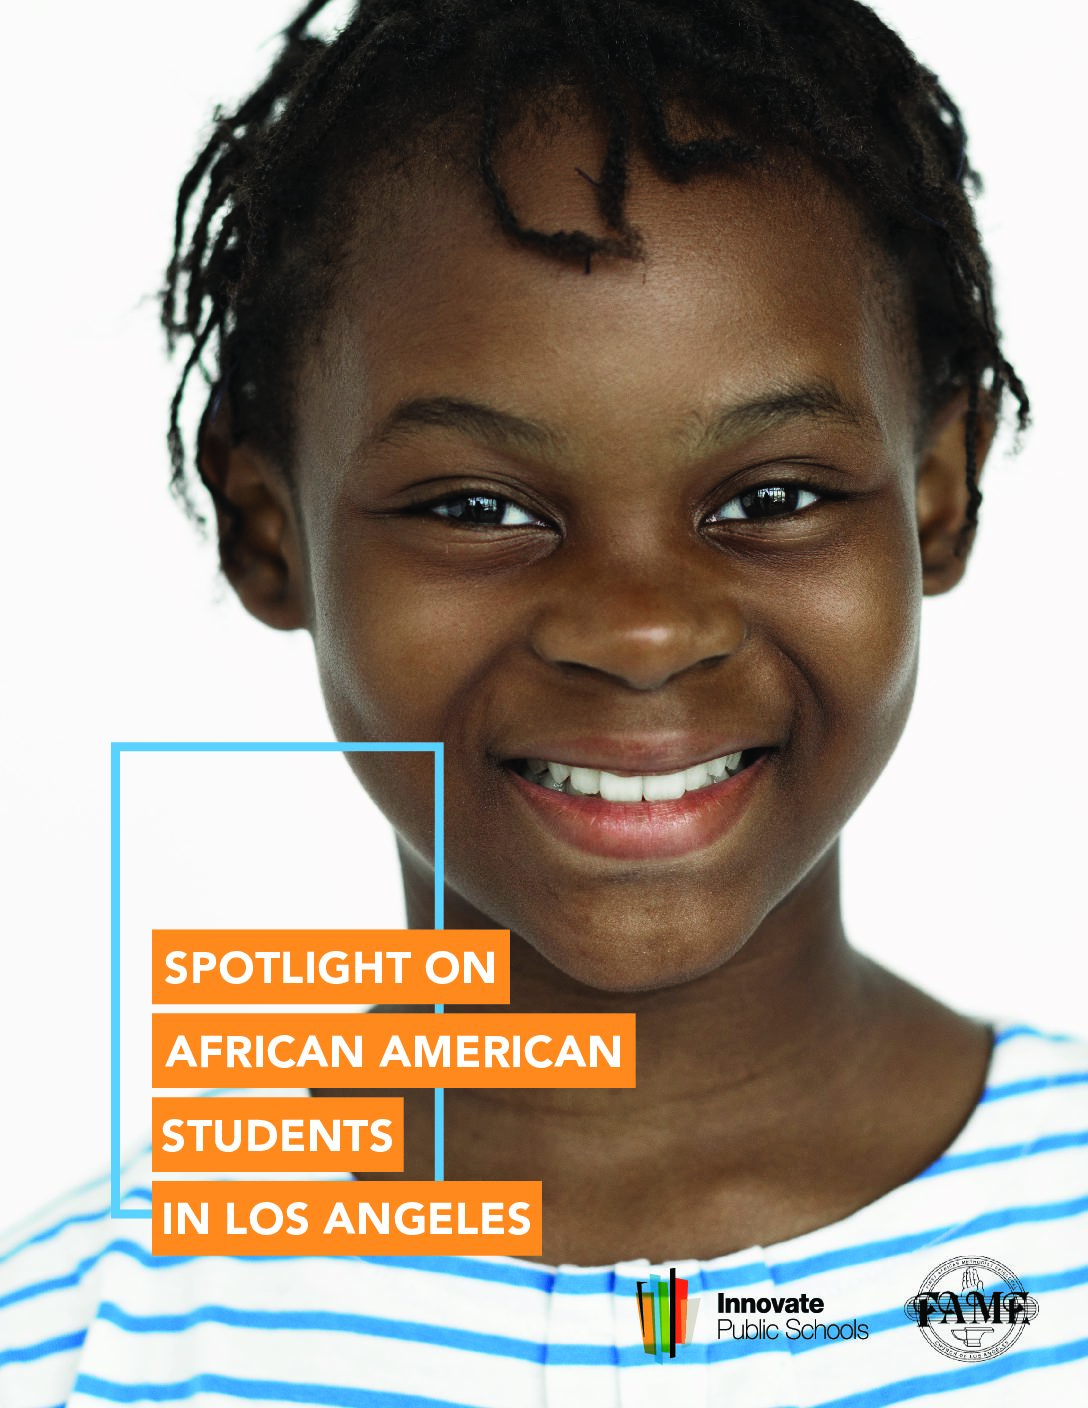 Spotlight on African American Students in Los Angeles